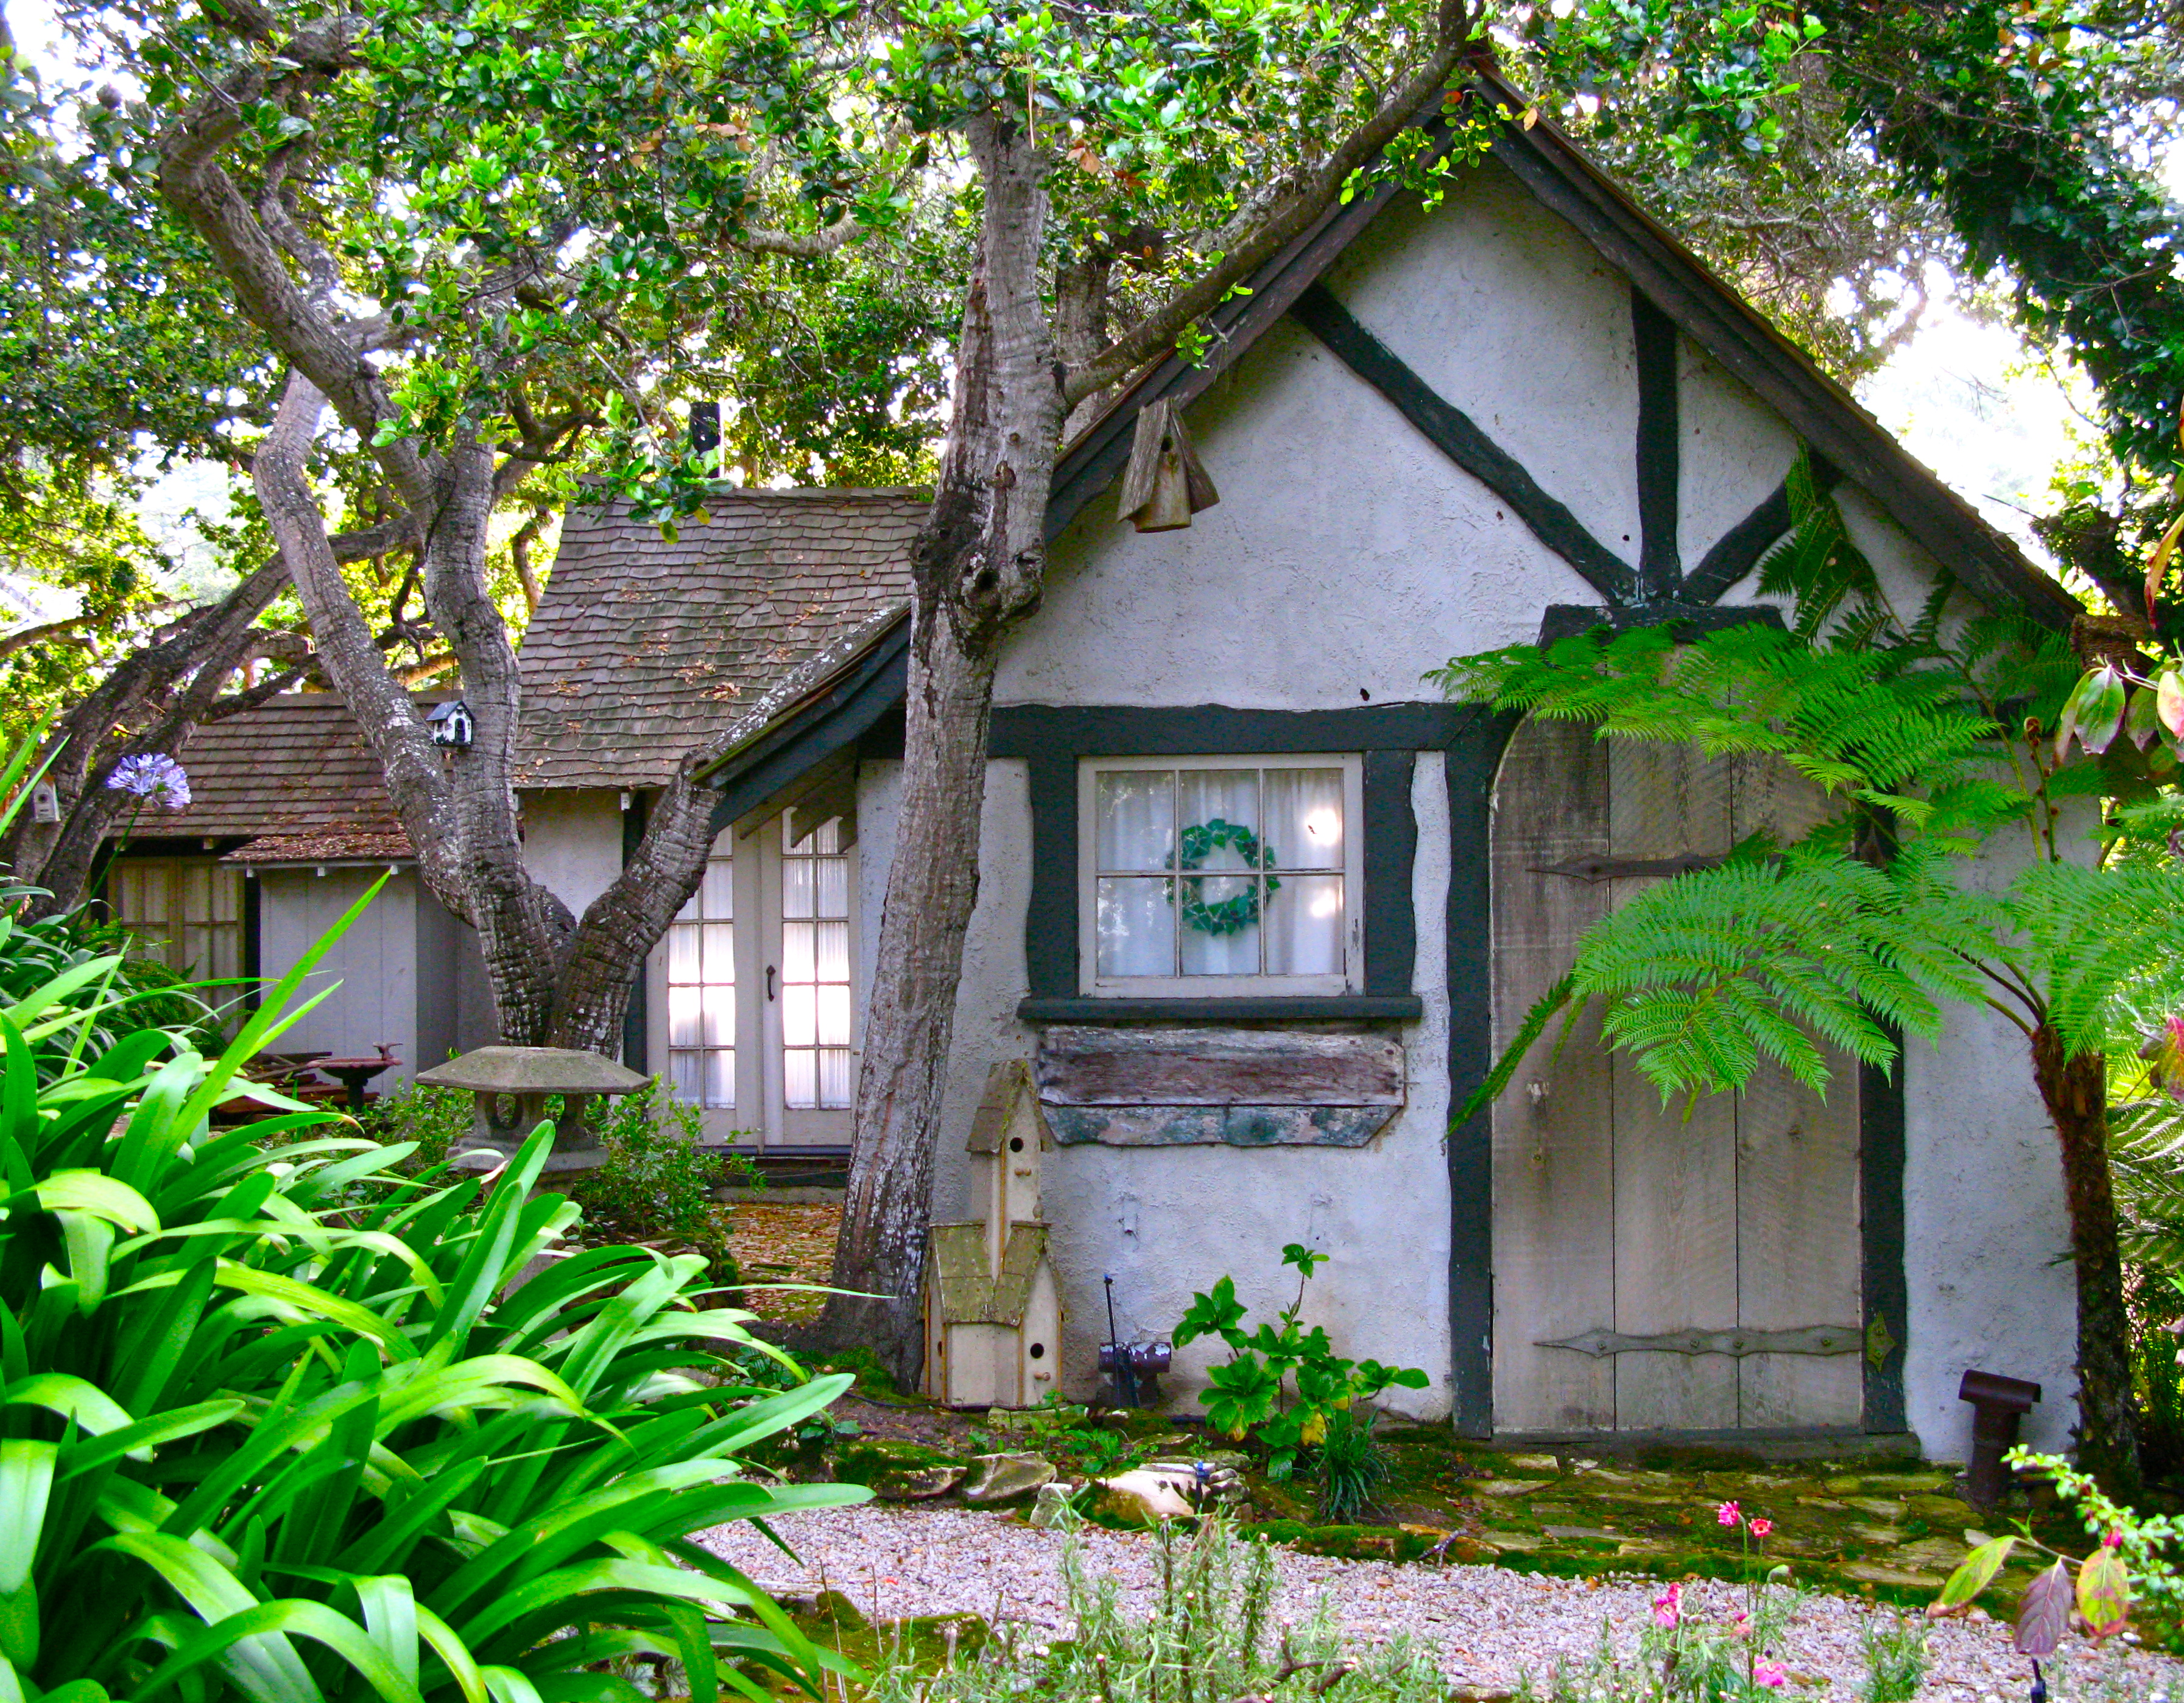 Hansel and gretel hugh comstock s first fairy tale for Hansel and gretel house plans